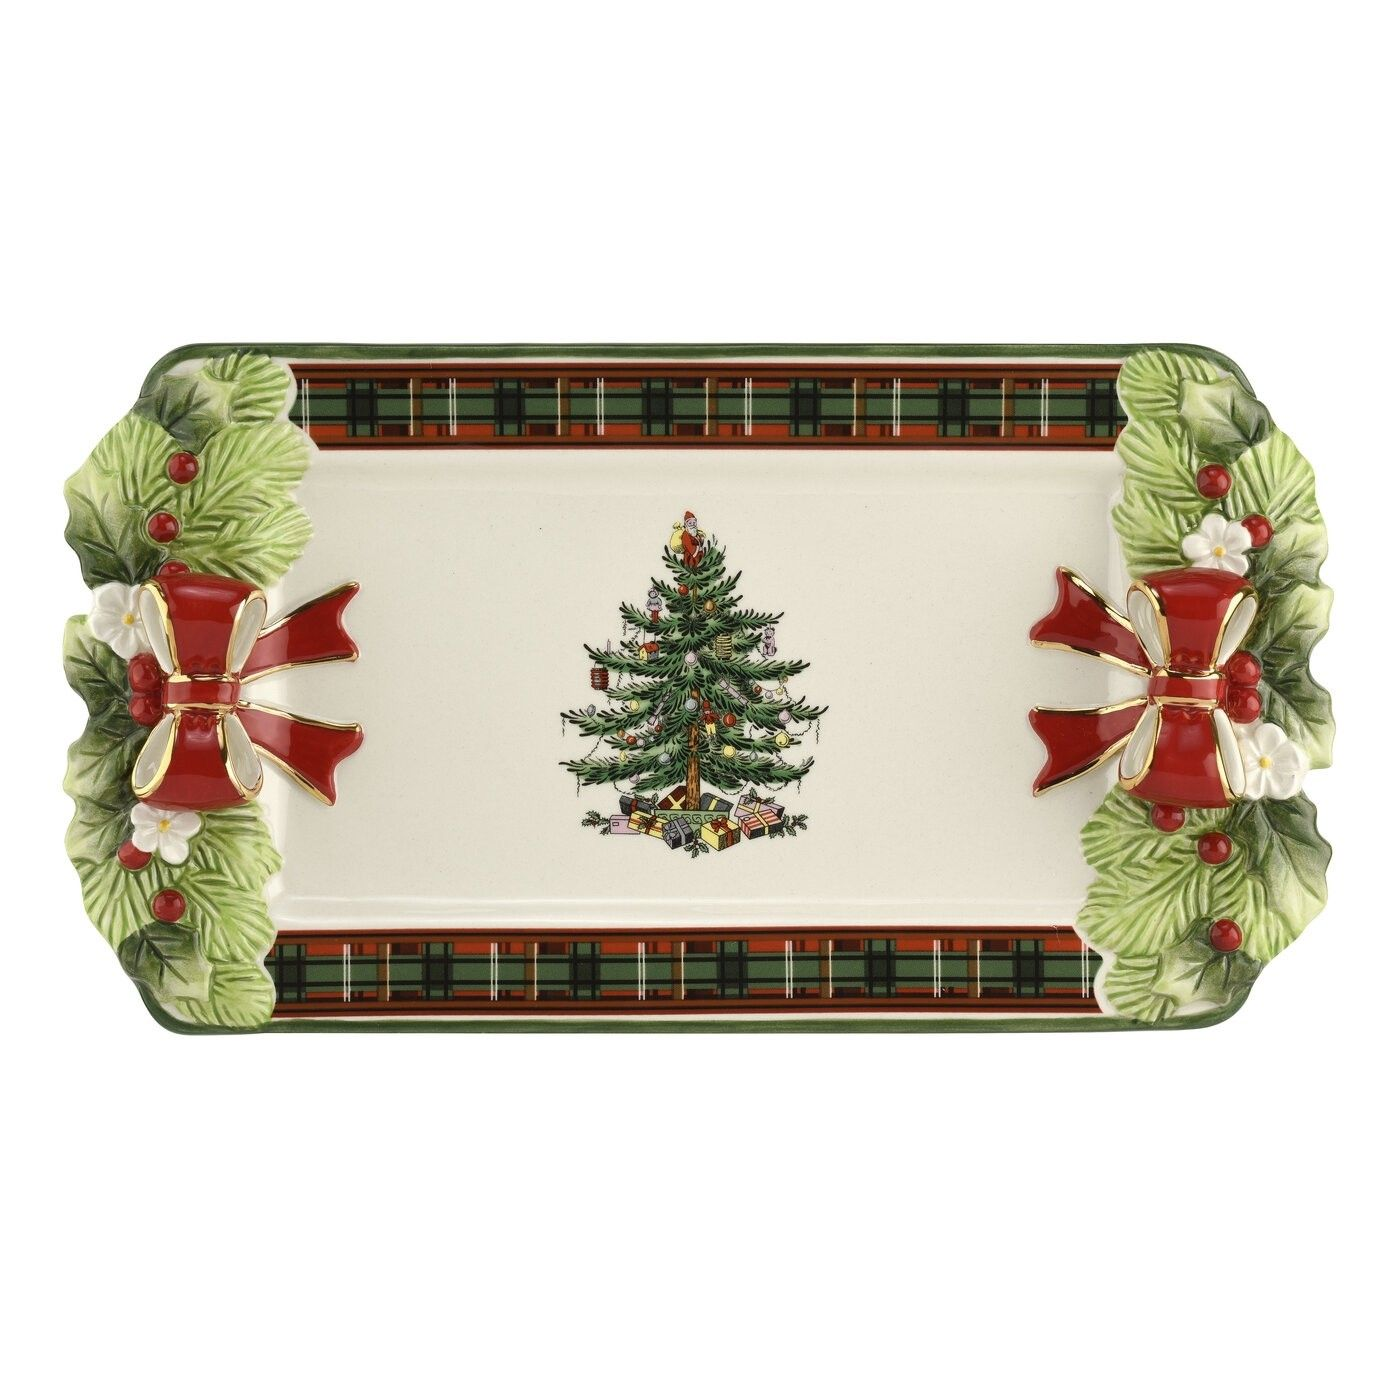 Spode Christmas Tree Candle Holder: Spode Christmas Tree Figural Collection Figural Tartan